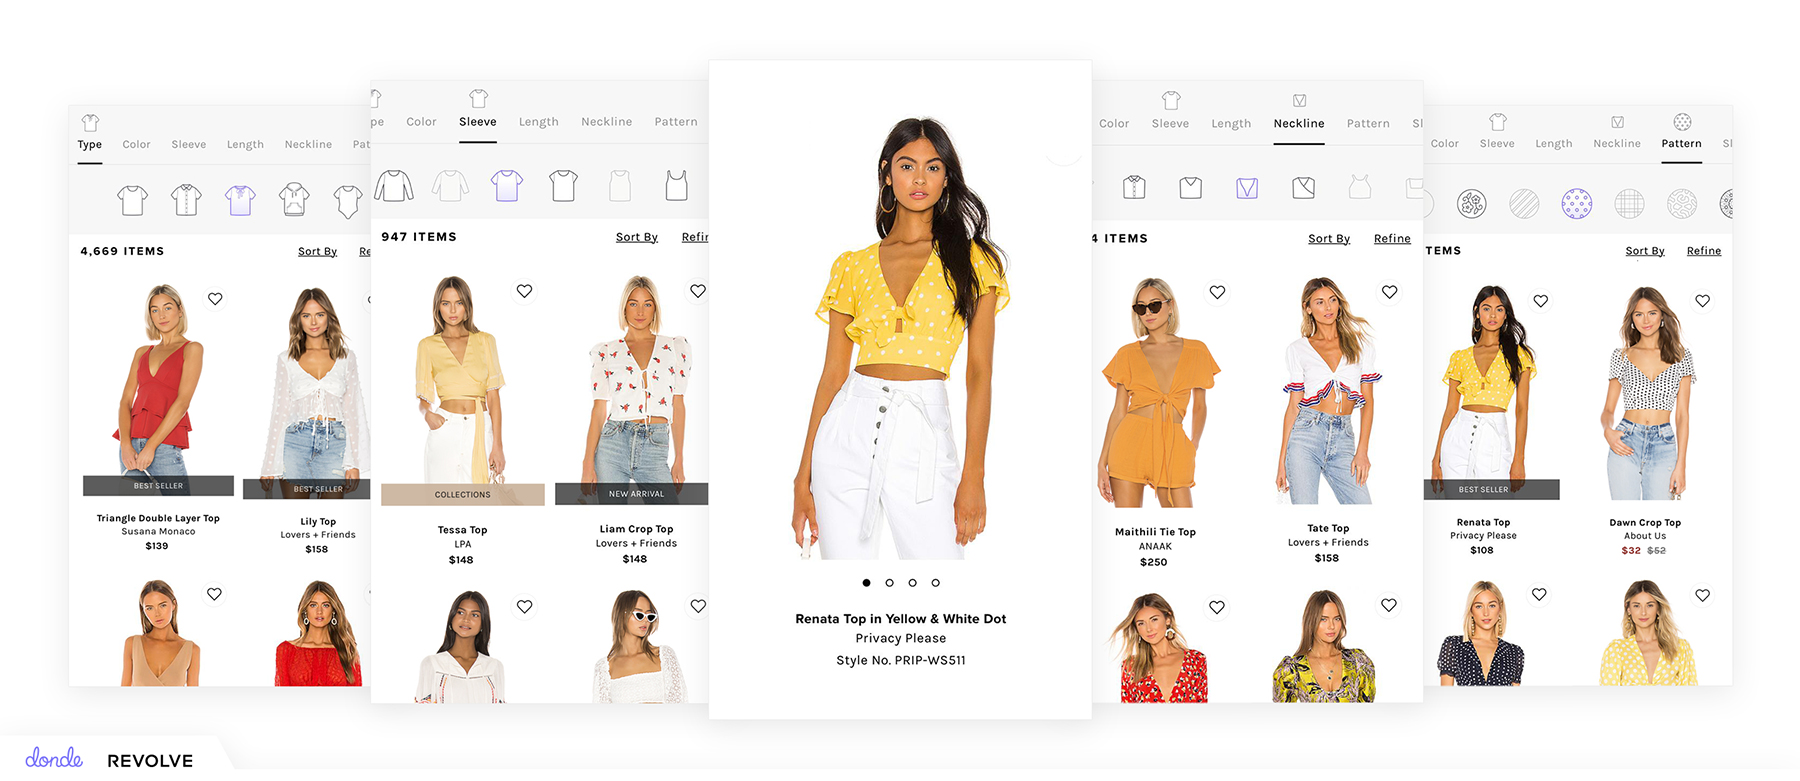 Donde visual search navigation